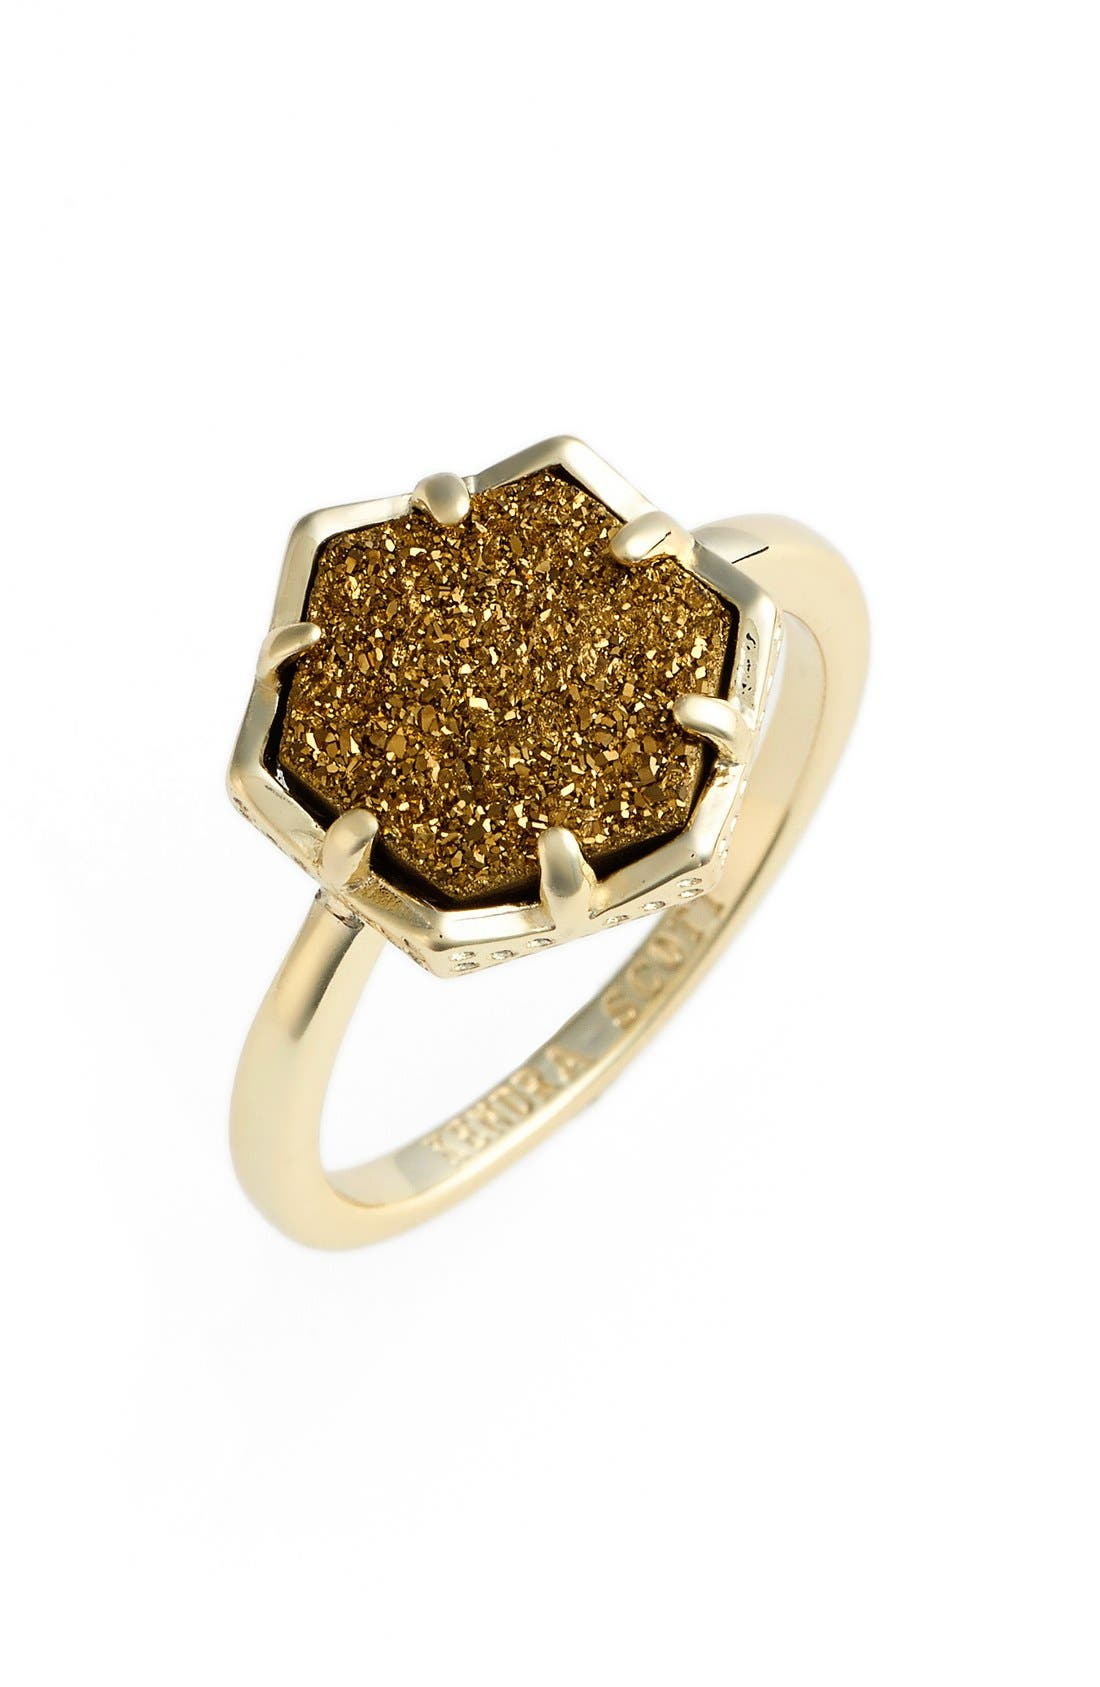 Main Image - Kendra Scott 'Kylie' Drusy Ring